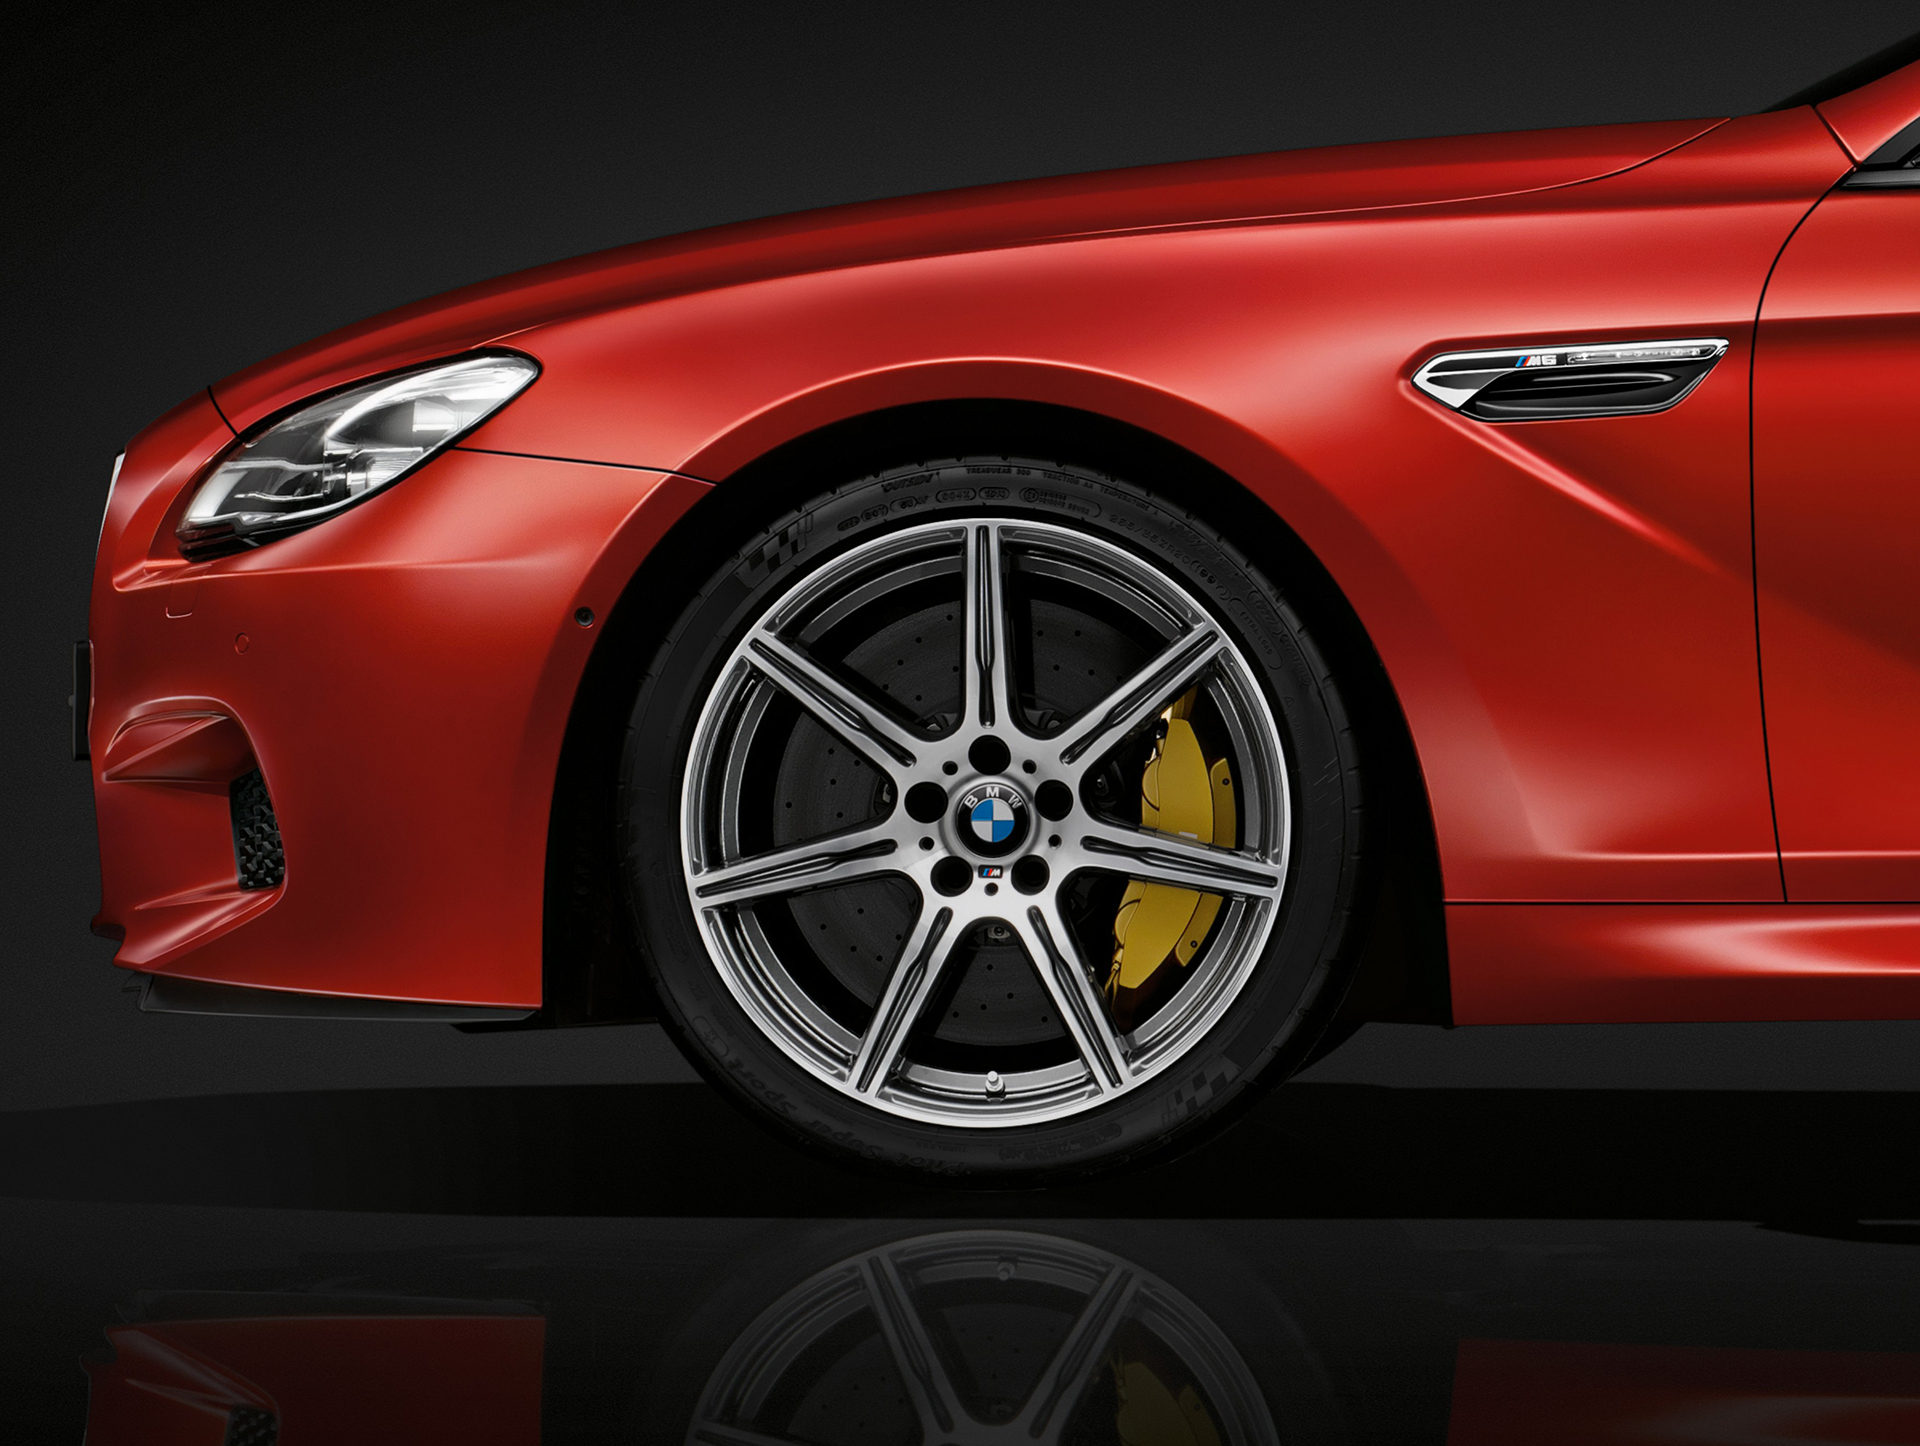 BMW M6 coupé 2015 - wheel / jante